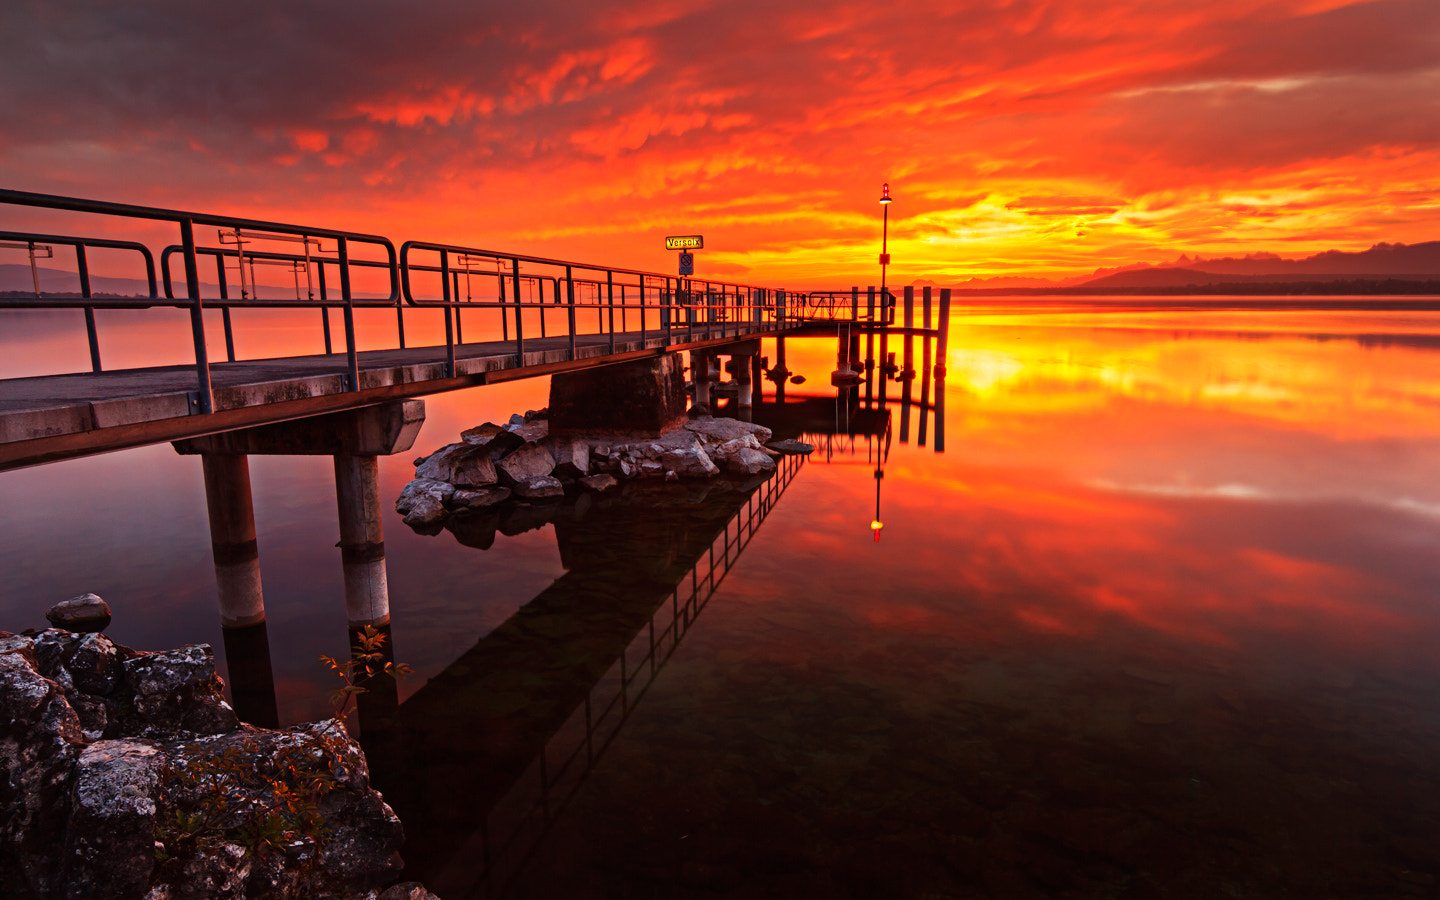 Photograph ... and fire in the sky by Dennis Hellmich on 500px